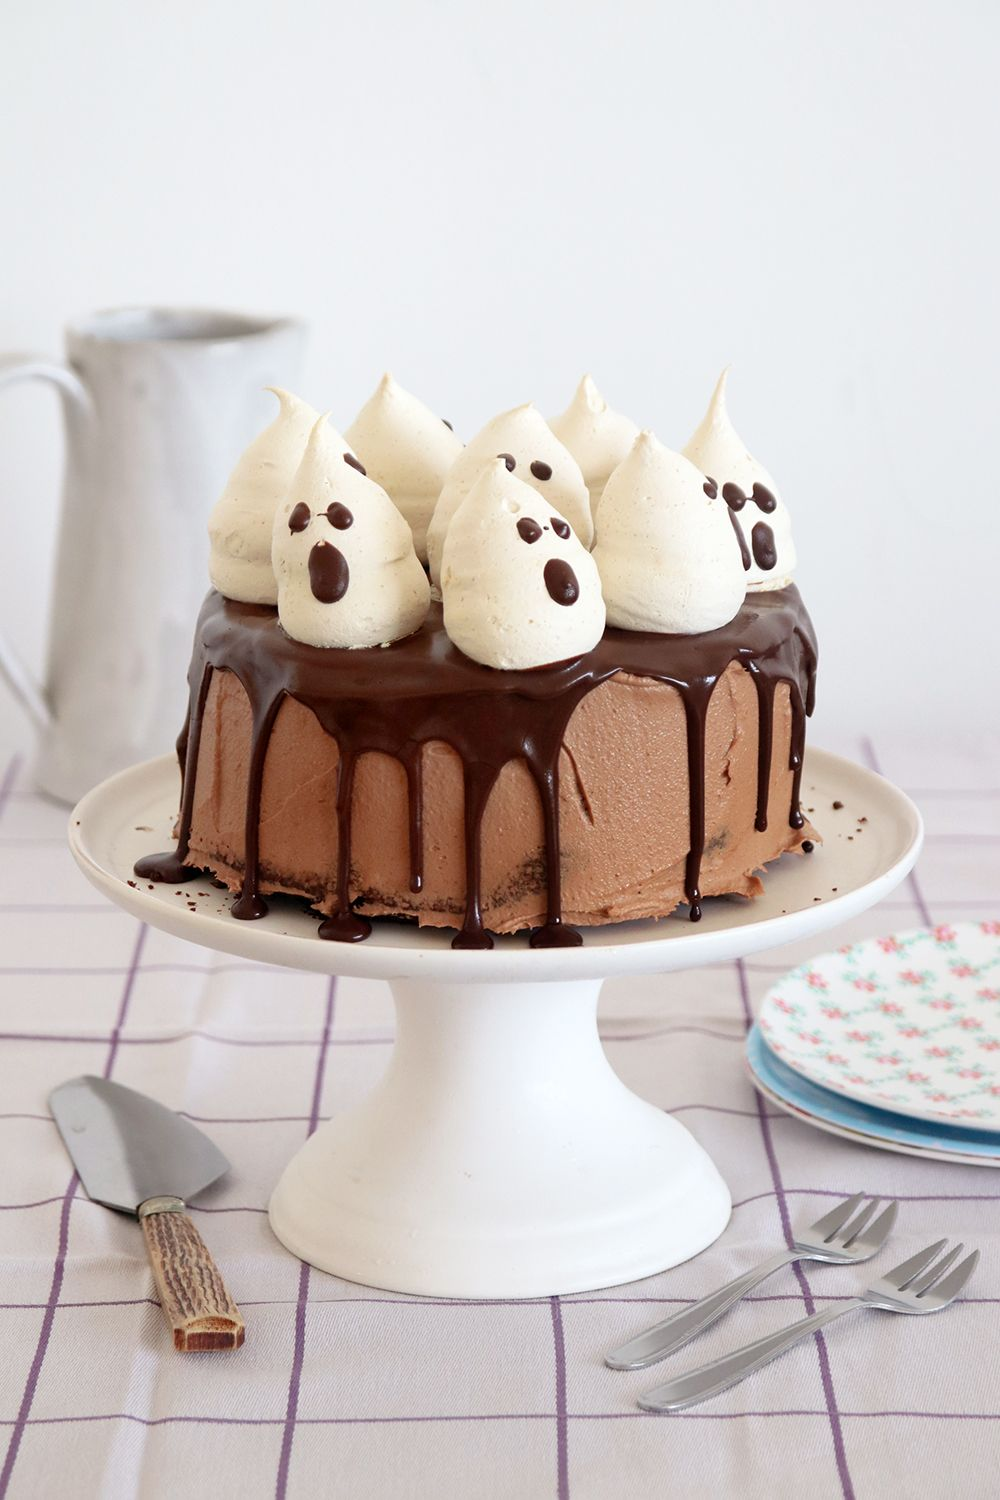 Sky-High Chocolate Cake with Meringue Ghosts | Photo: Natalie Levin